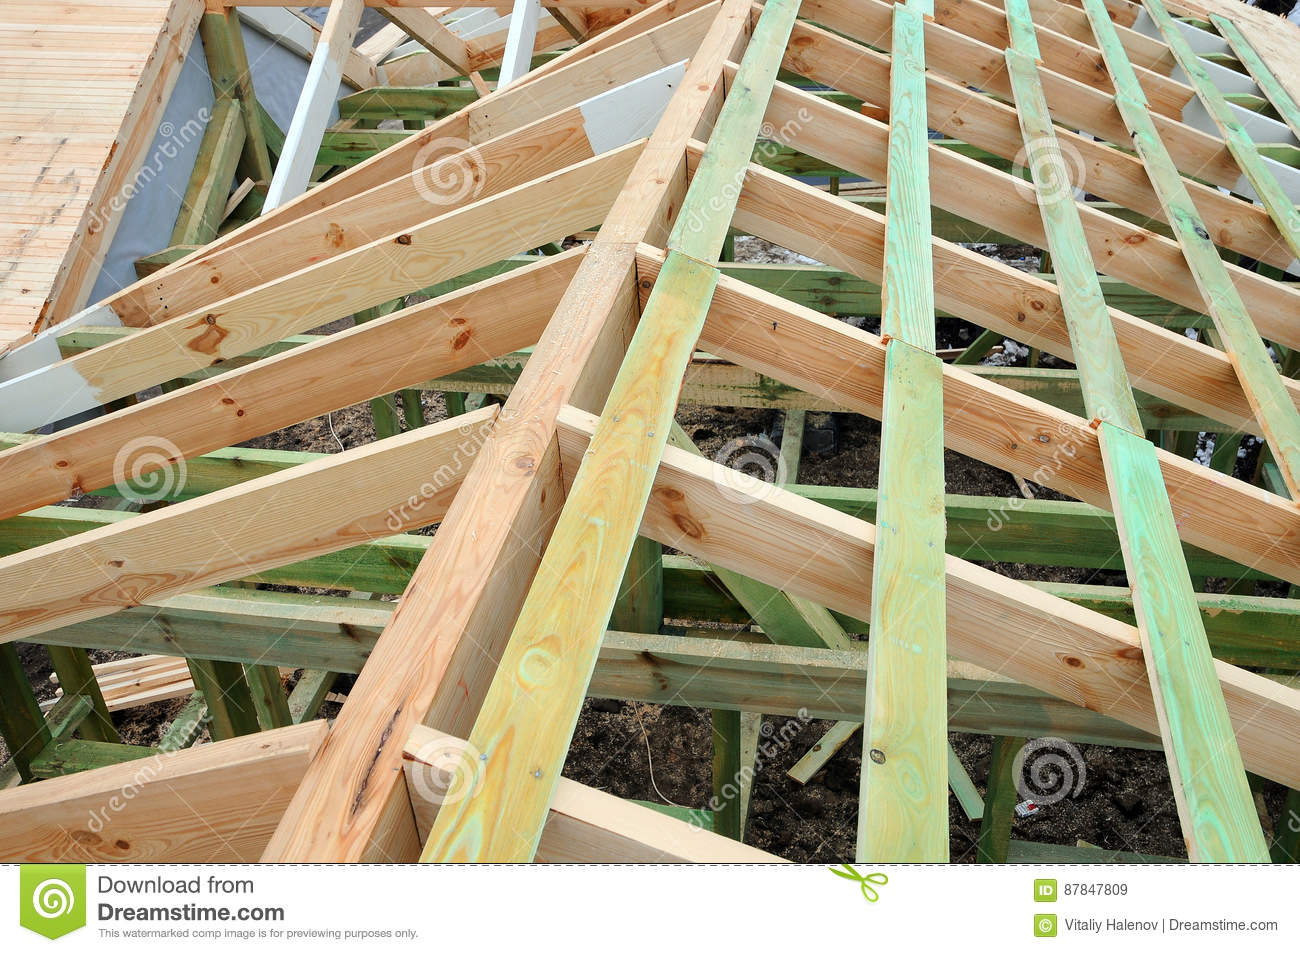 The Wooden Structure Of The Building Wooden Frame Building Wooden